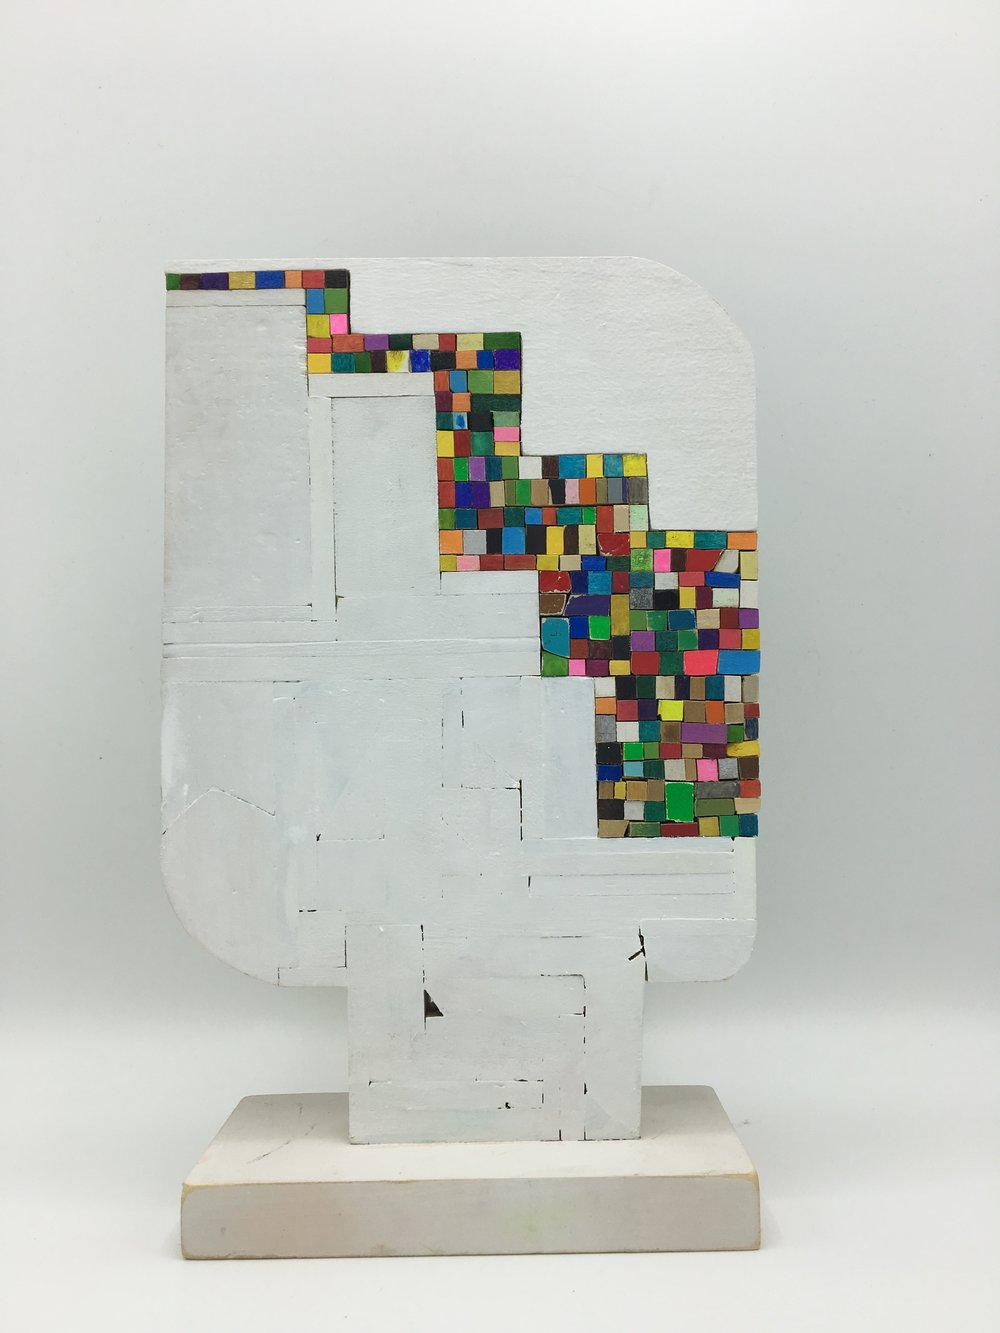 8 Bit , 2016 [private collection New York, NY] Wood, Paint, Colored Pencil, Glue 10 ½ x 6 ½ x 3 in.